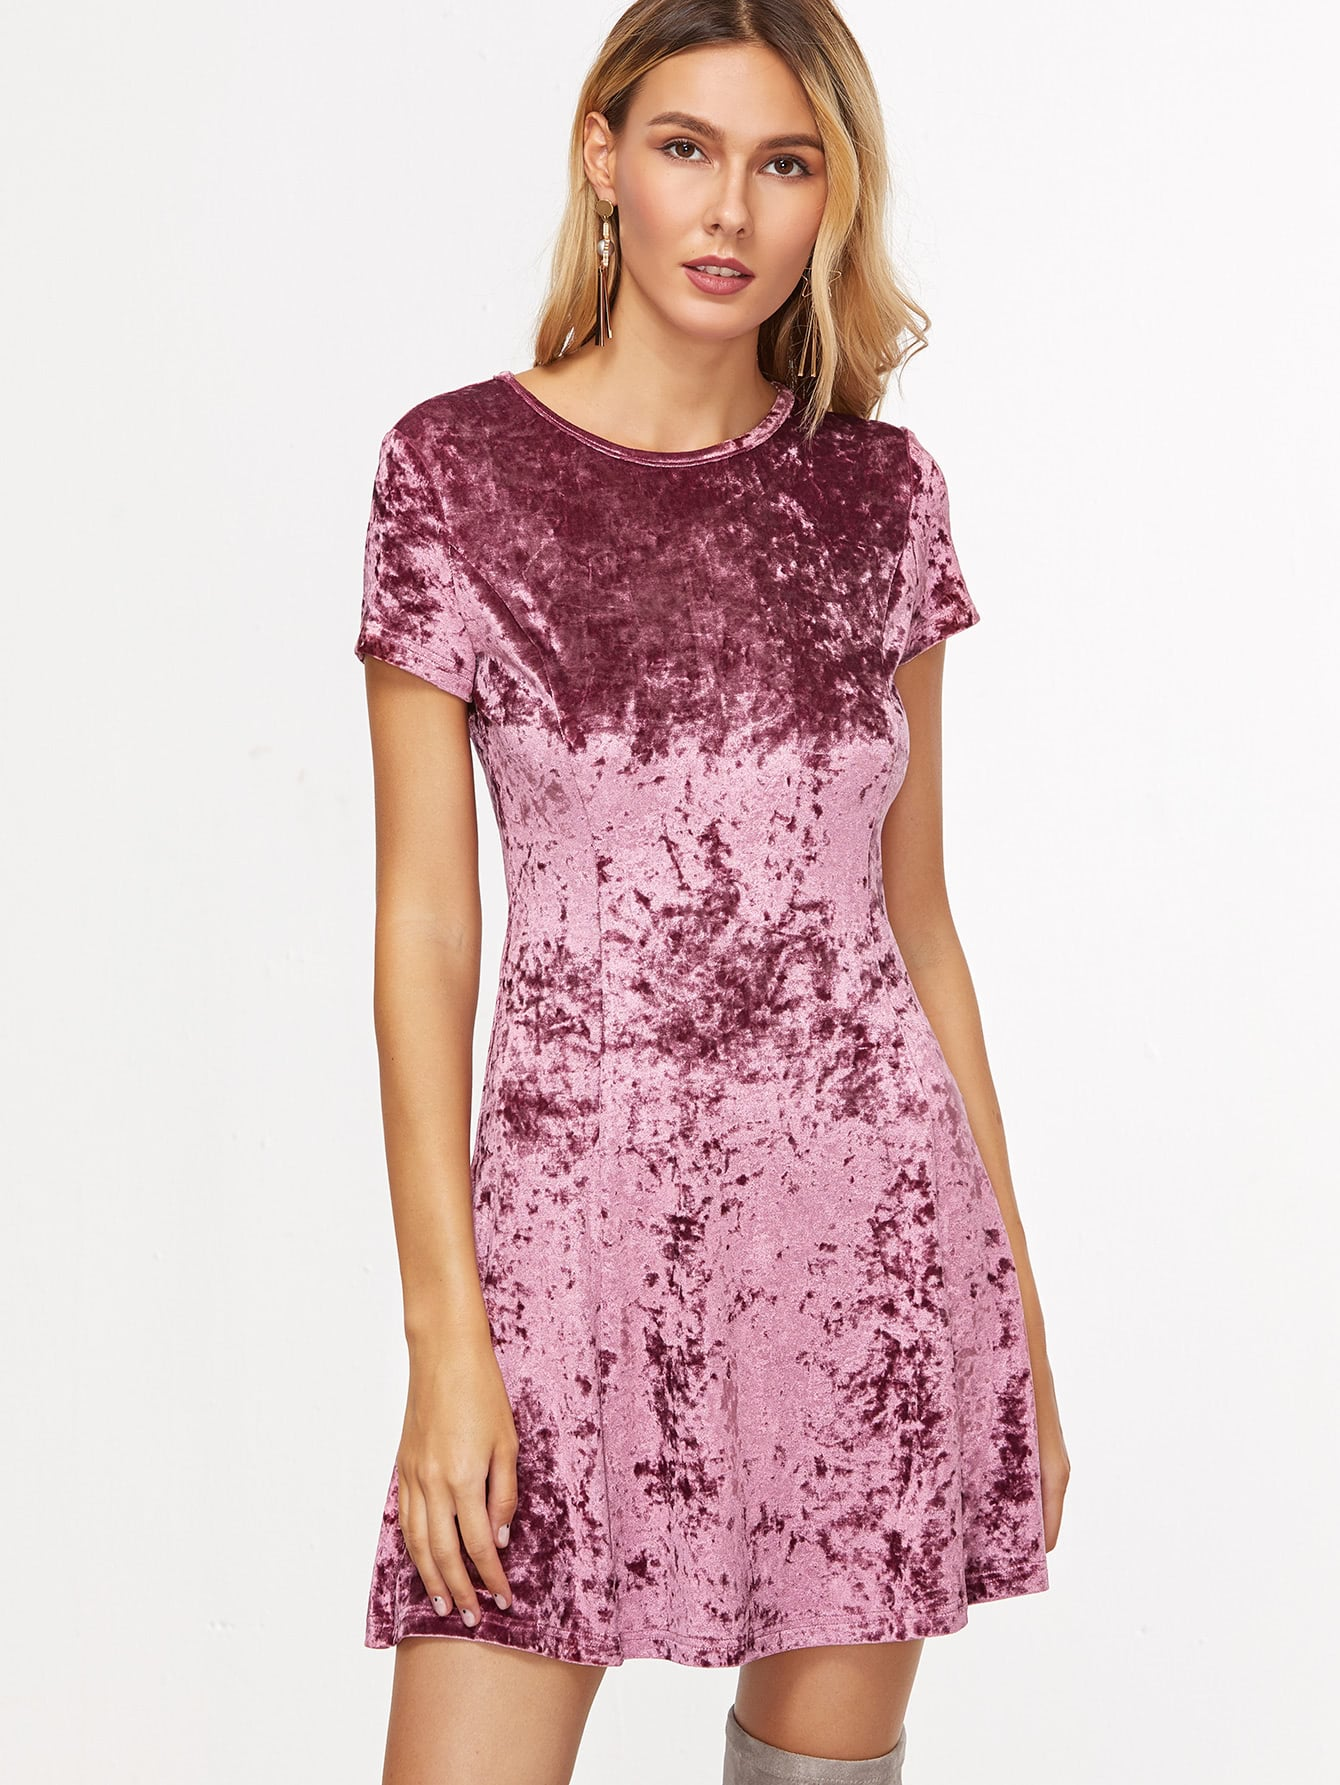 Purple Zip Back Crushed Velvet Dress -SheIn(Sheinside)